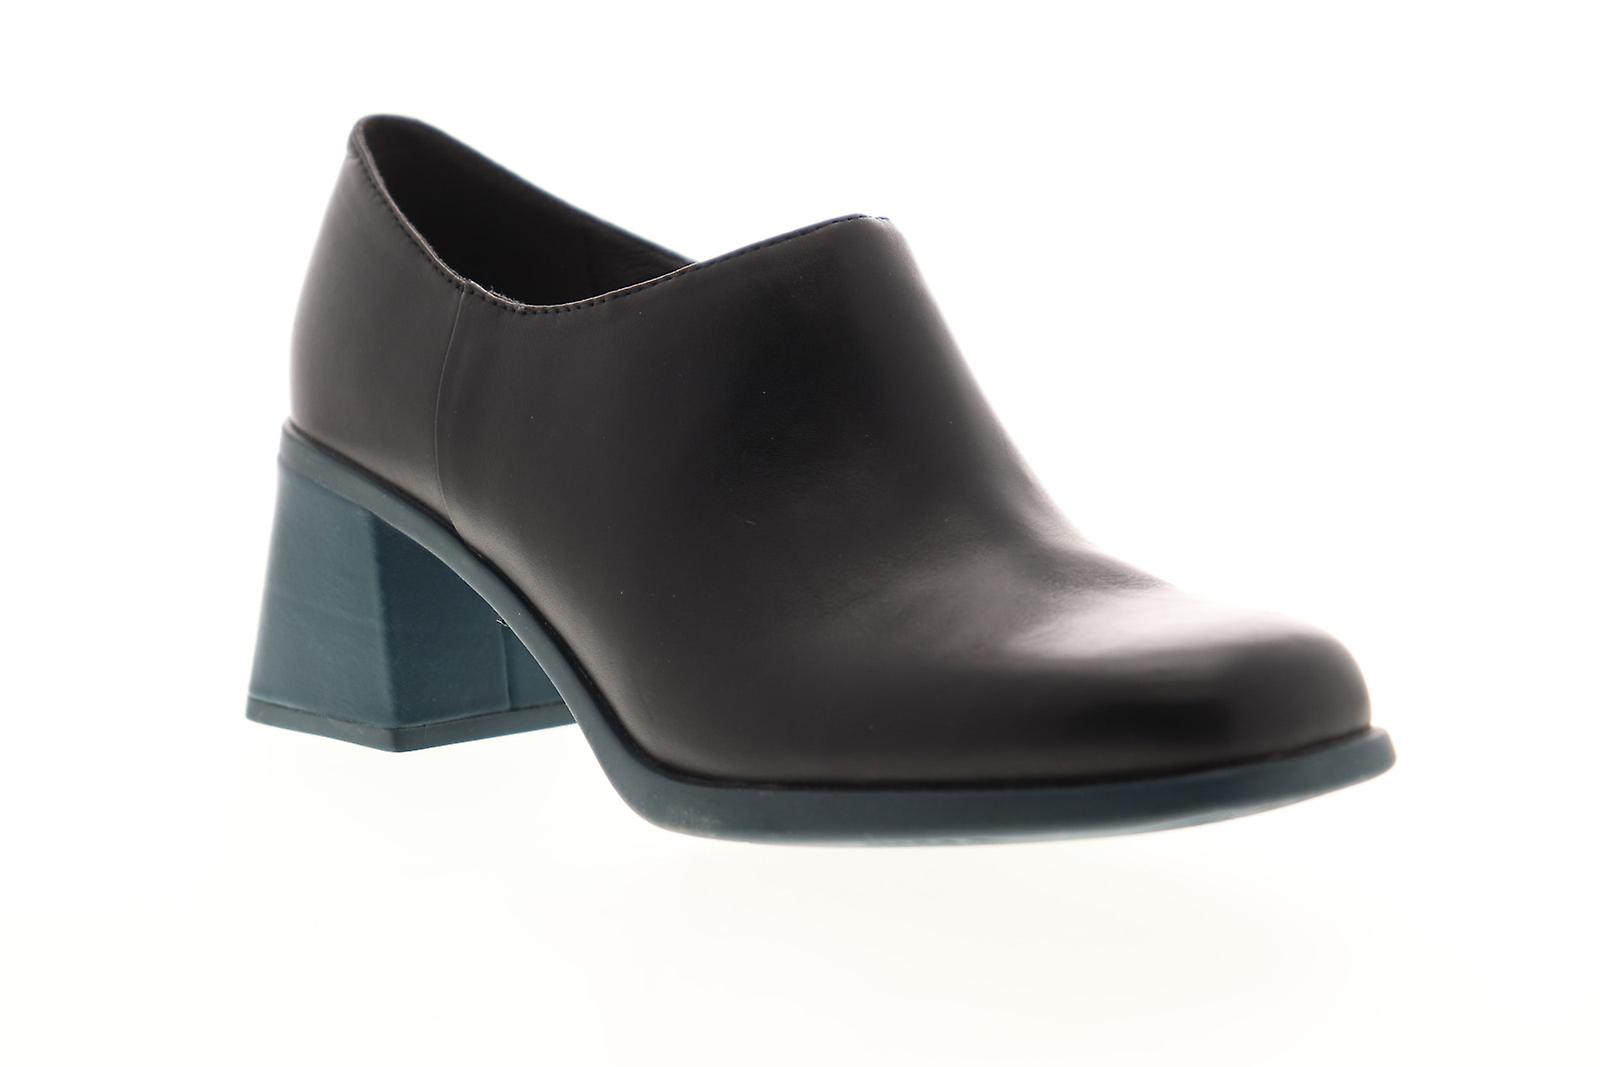 Camper Karolina Femmes Black Leather Slip On Casual Dress Boots - Remise particulière